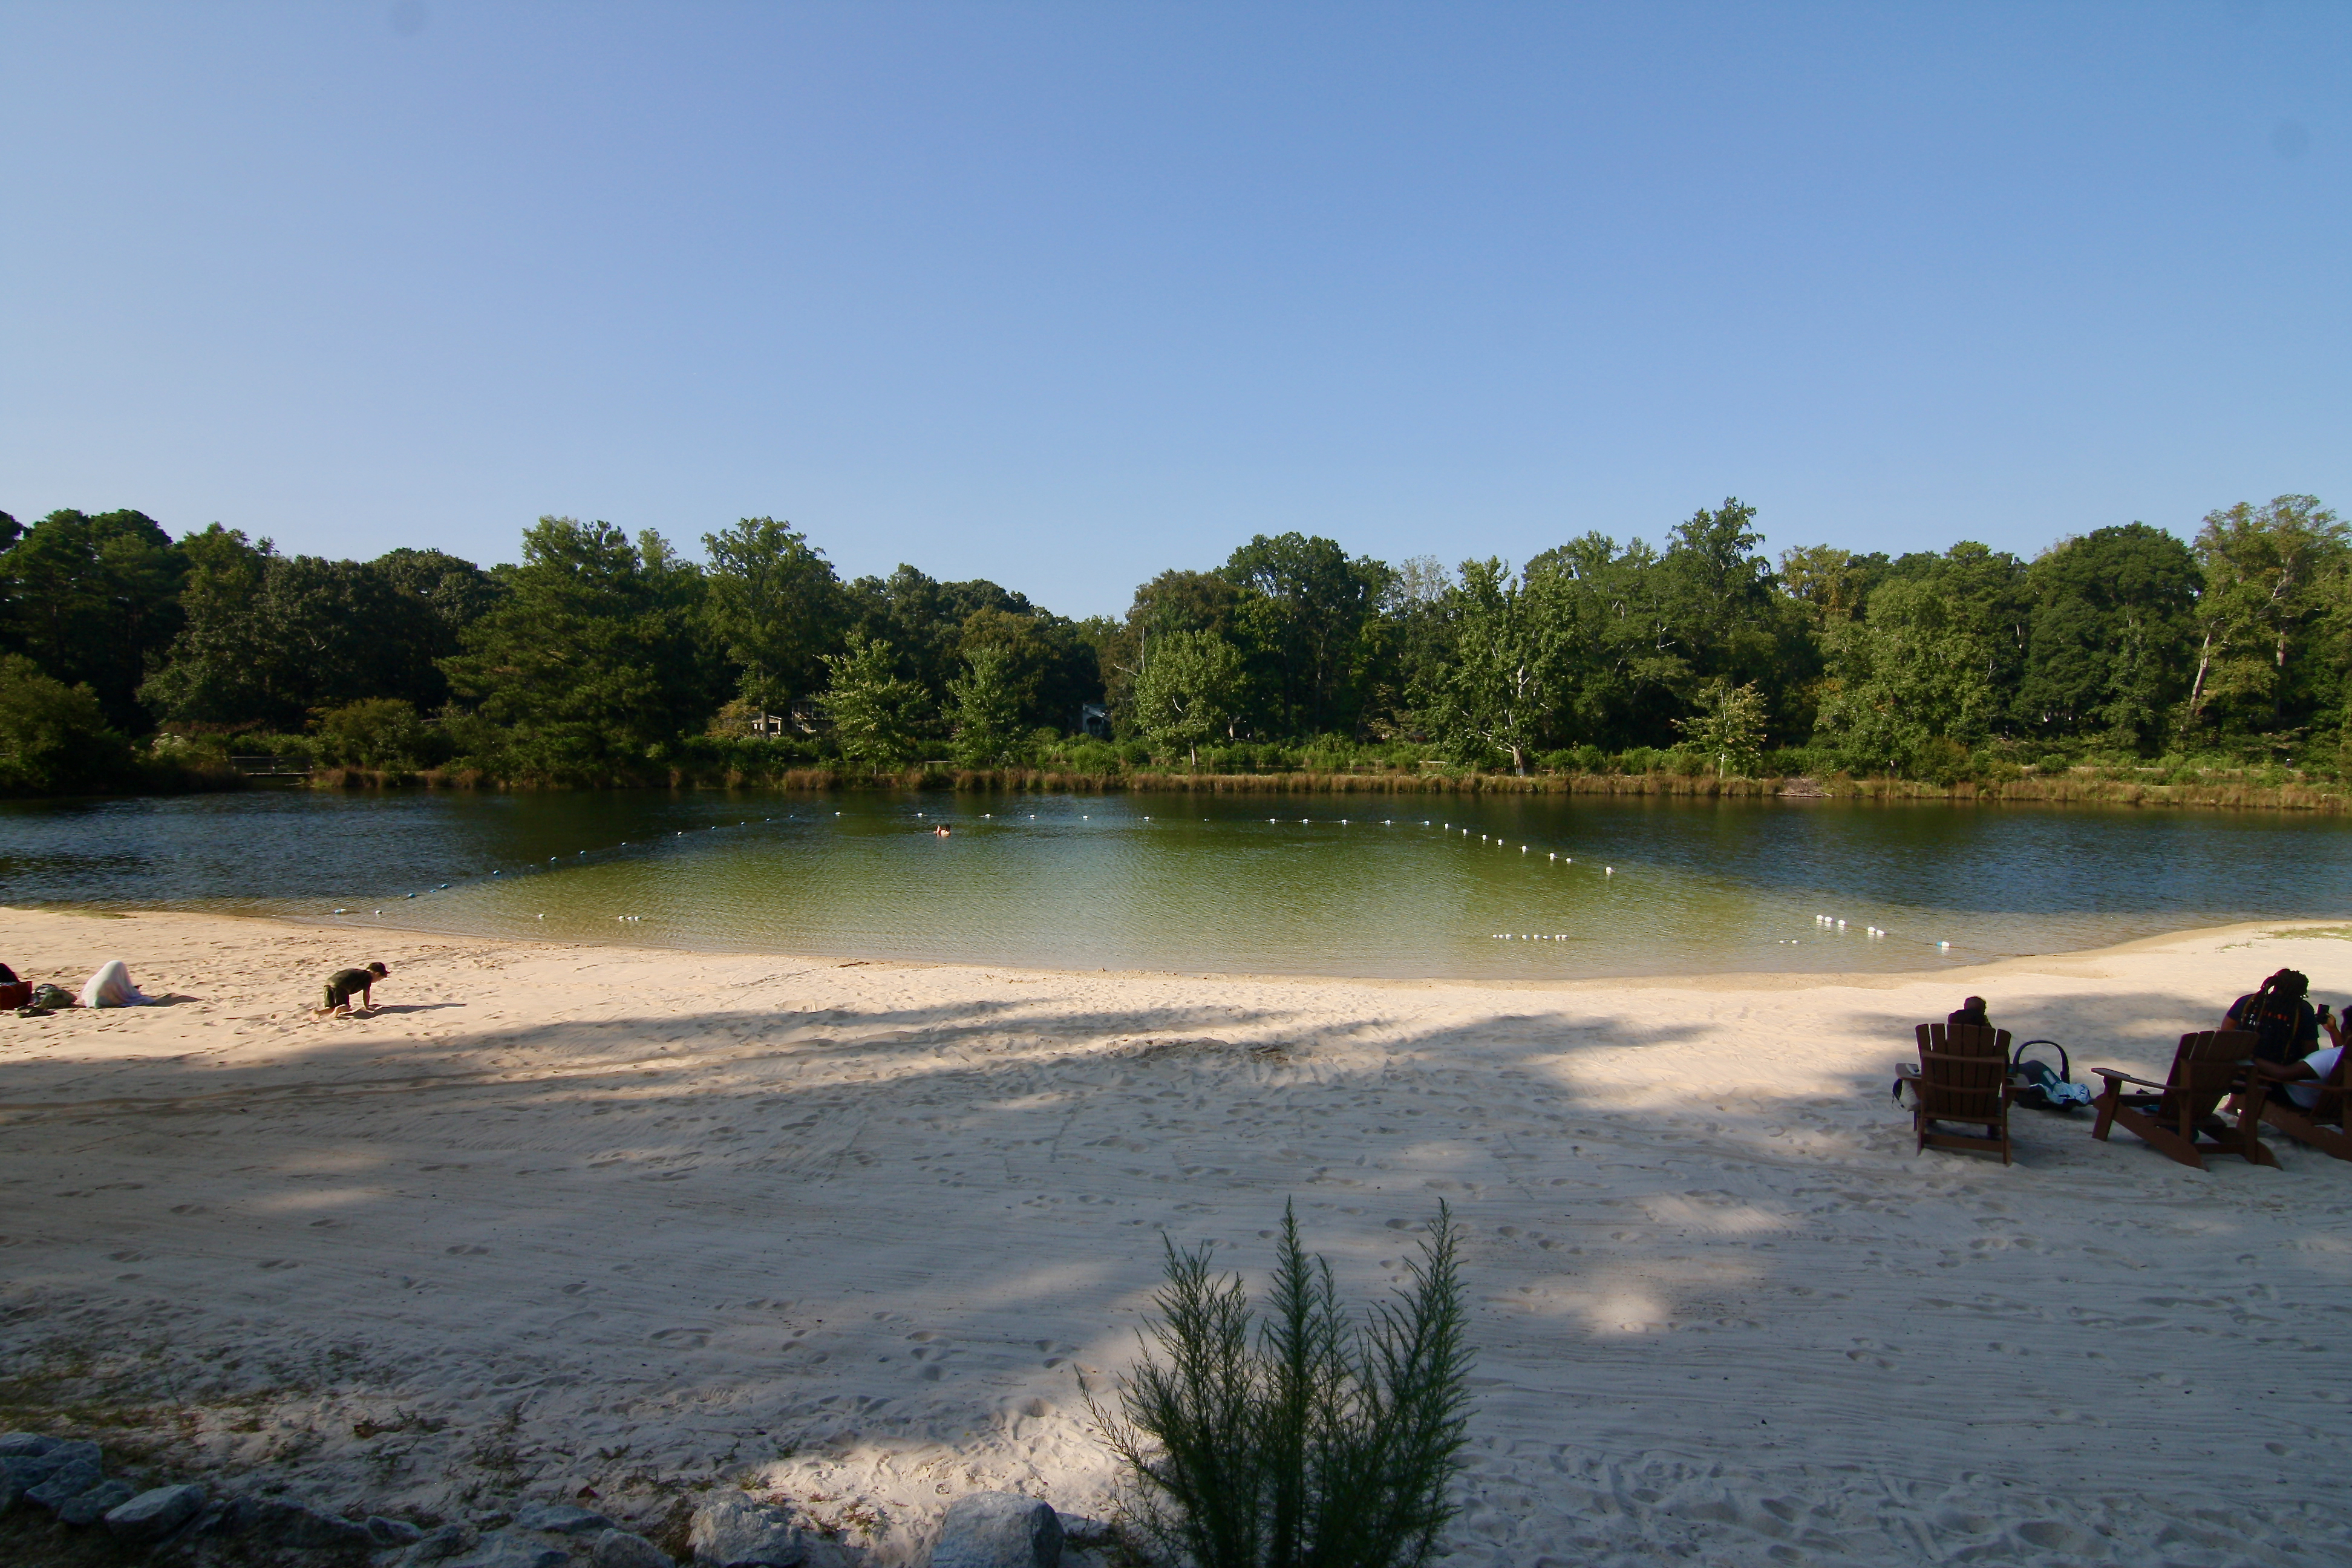 A lake with rope for public swimming and whitish sands with banks of trees beyond.